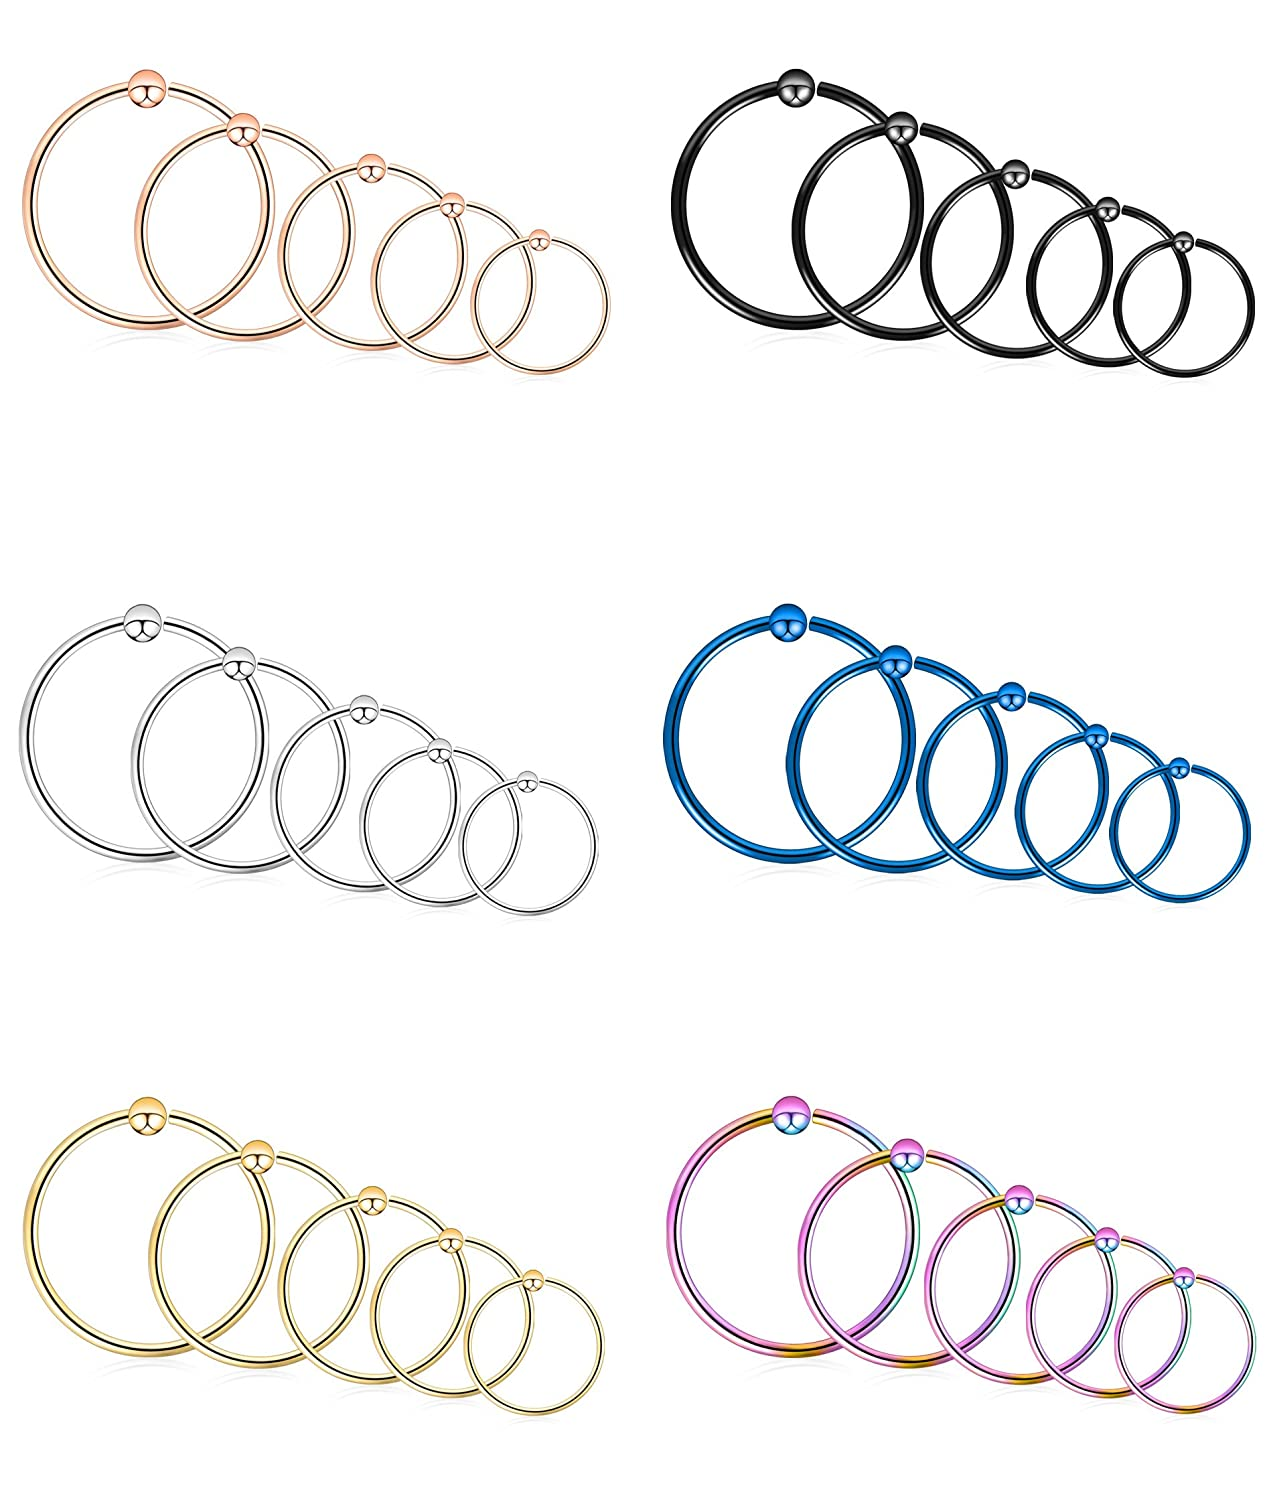 Tornito 18-30PCS 18G-16G-14G 316L Stainless Steel Nose Ring Hoop Septum Lip Daith Cartilage Helix Tragus Piercing Ring NP10C-18G